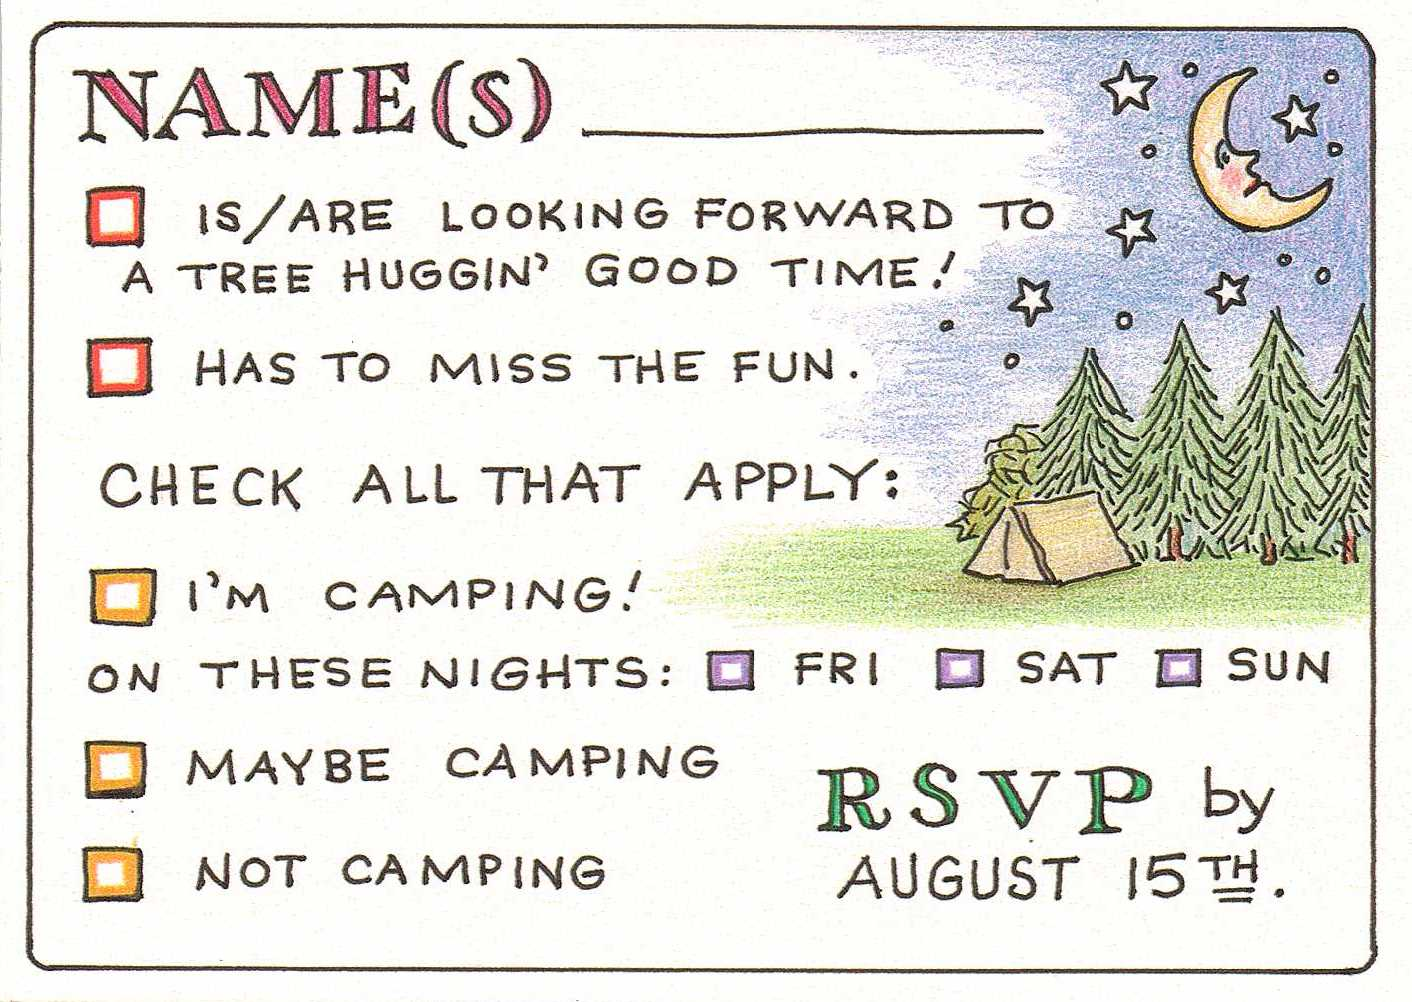 Camping Wedding Invitations: Phases Of The Moonblossom: Wedding Invitations